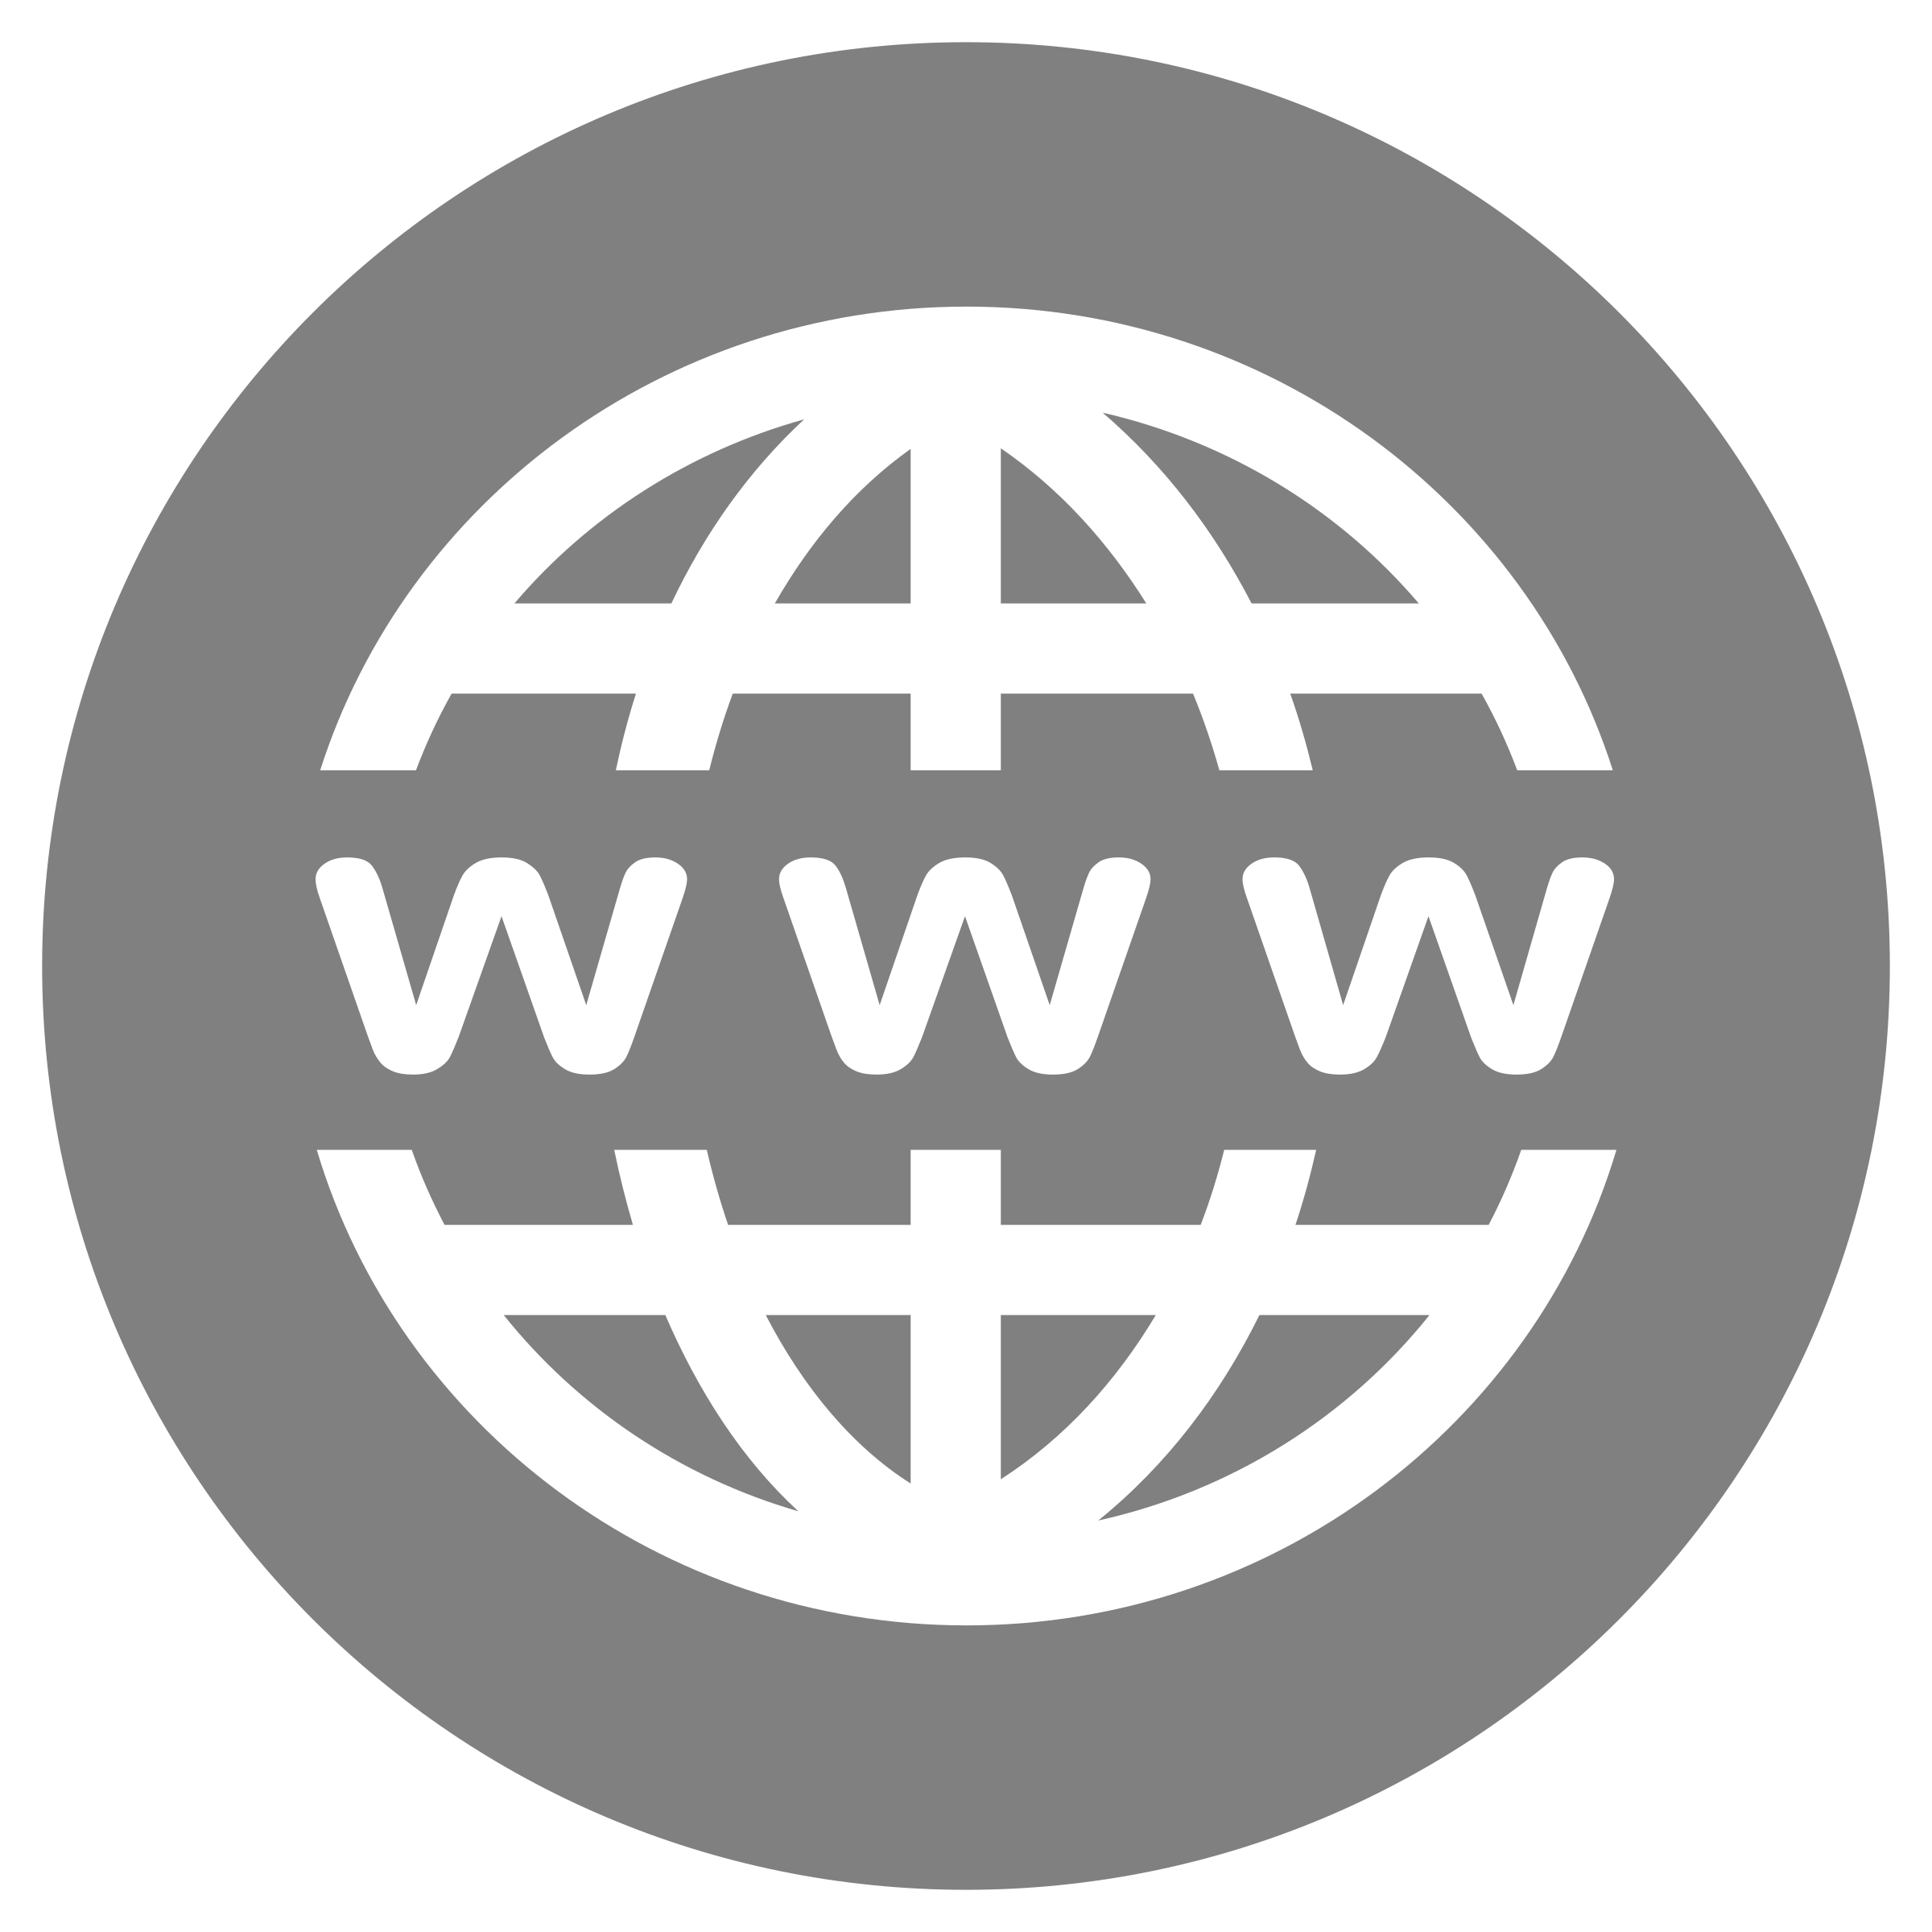 Internet transparent black and white. Www icon on grey